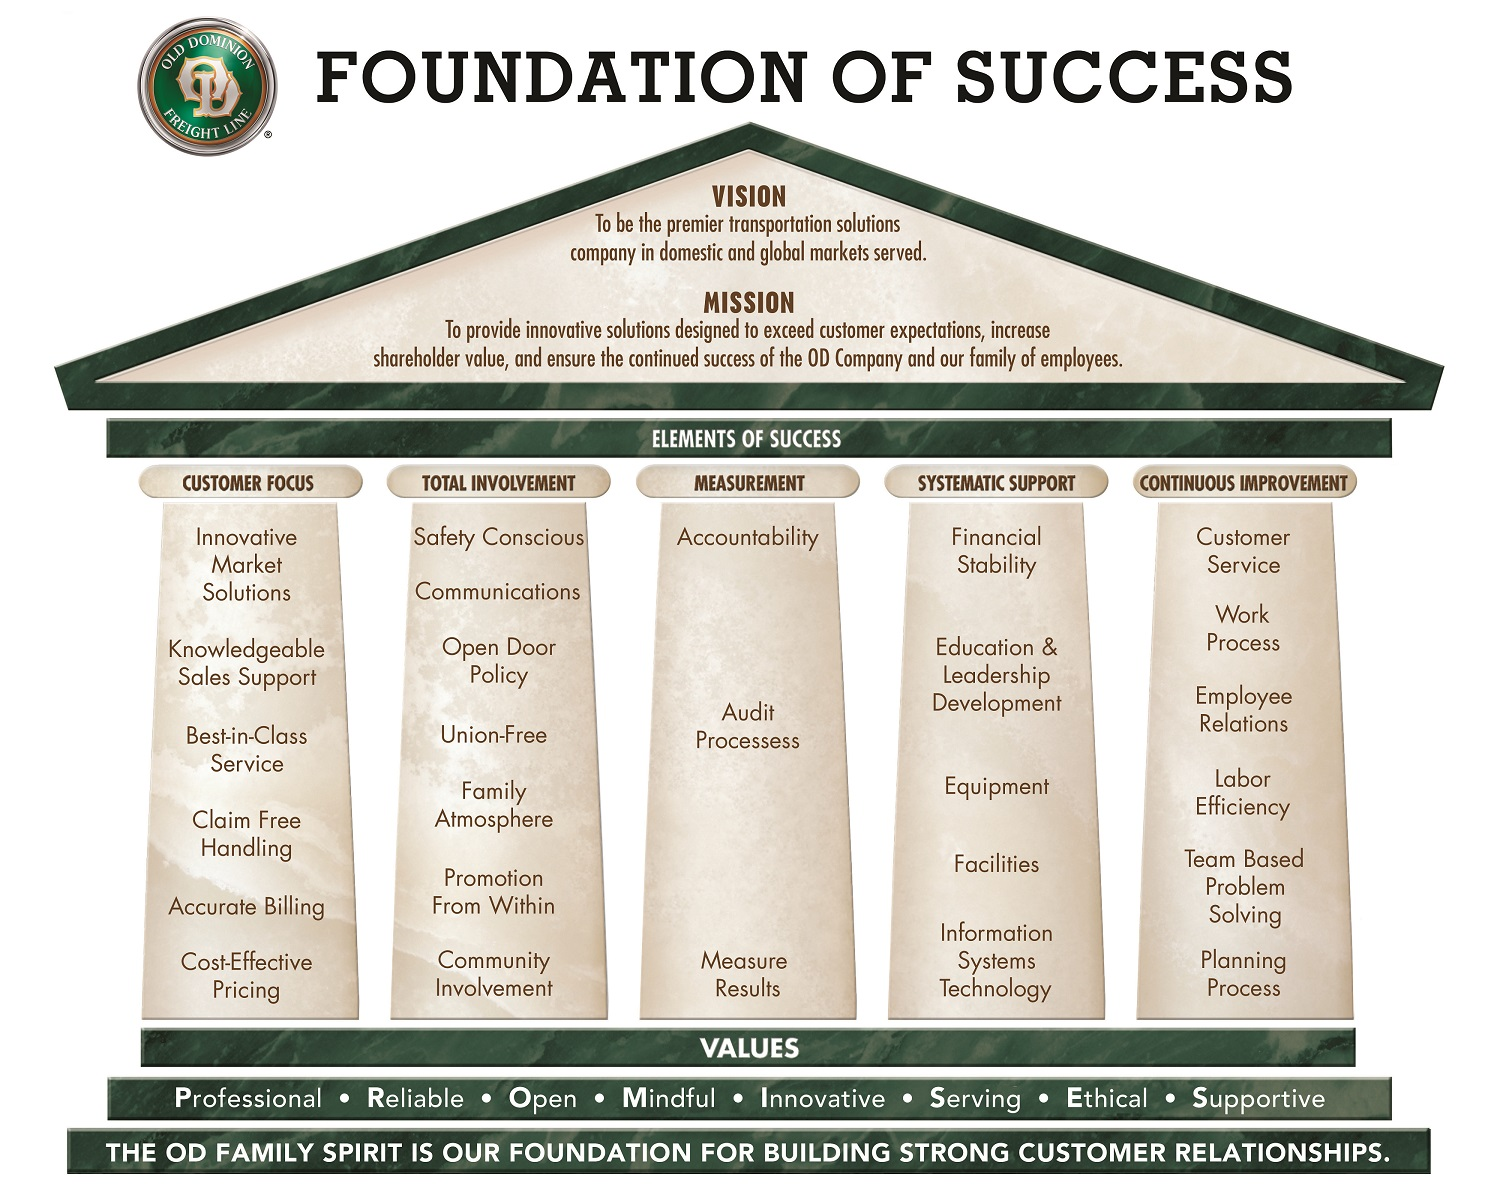 Old Dominion Foundation of Success Model